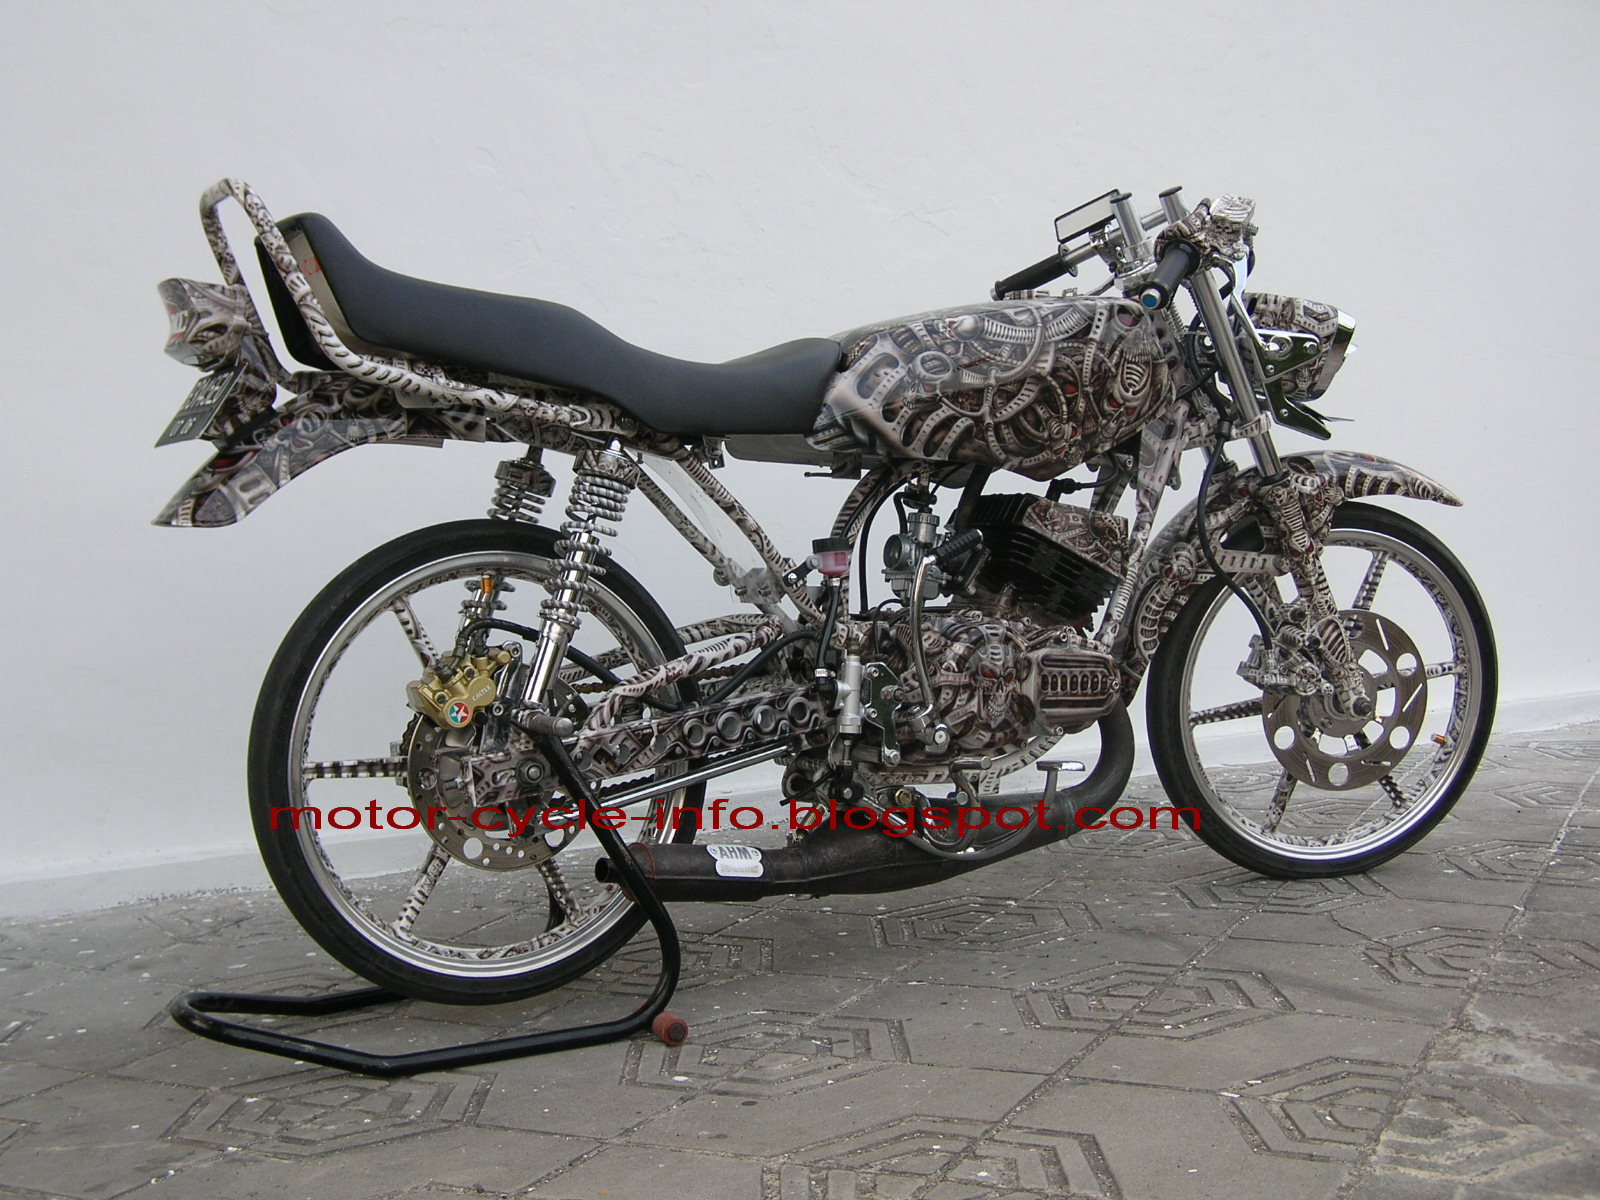 the best motor modification: modif yamaha rx king airbrush extreme